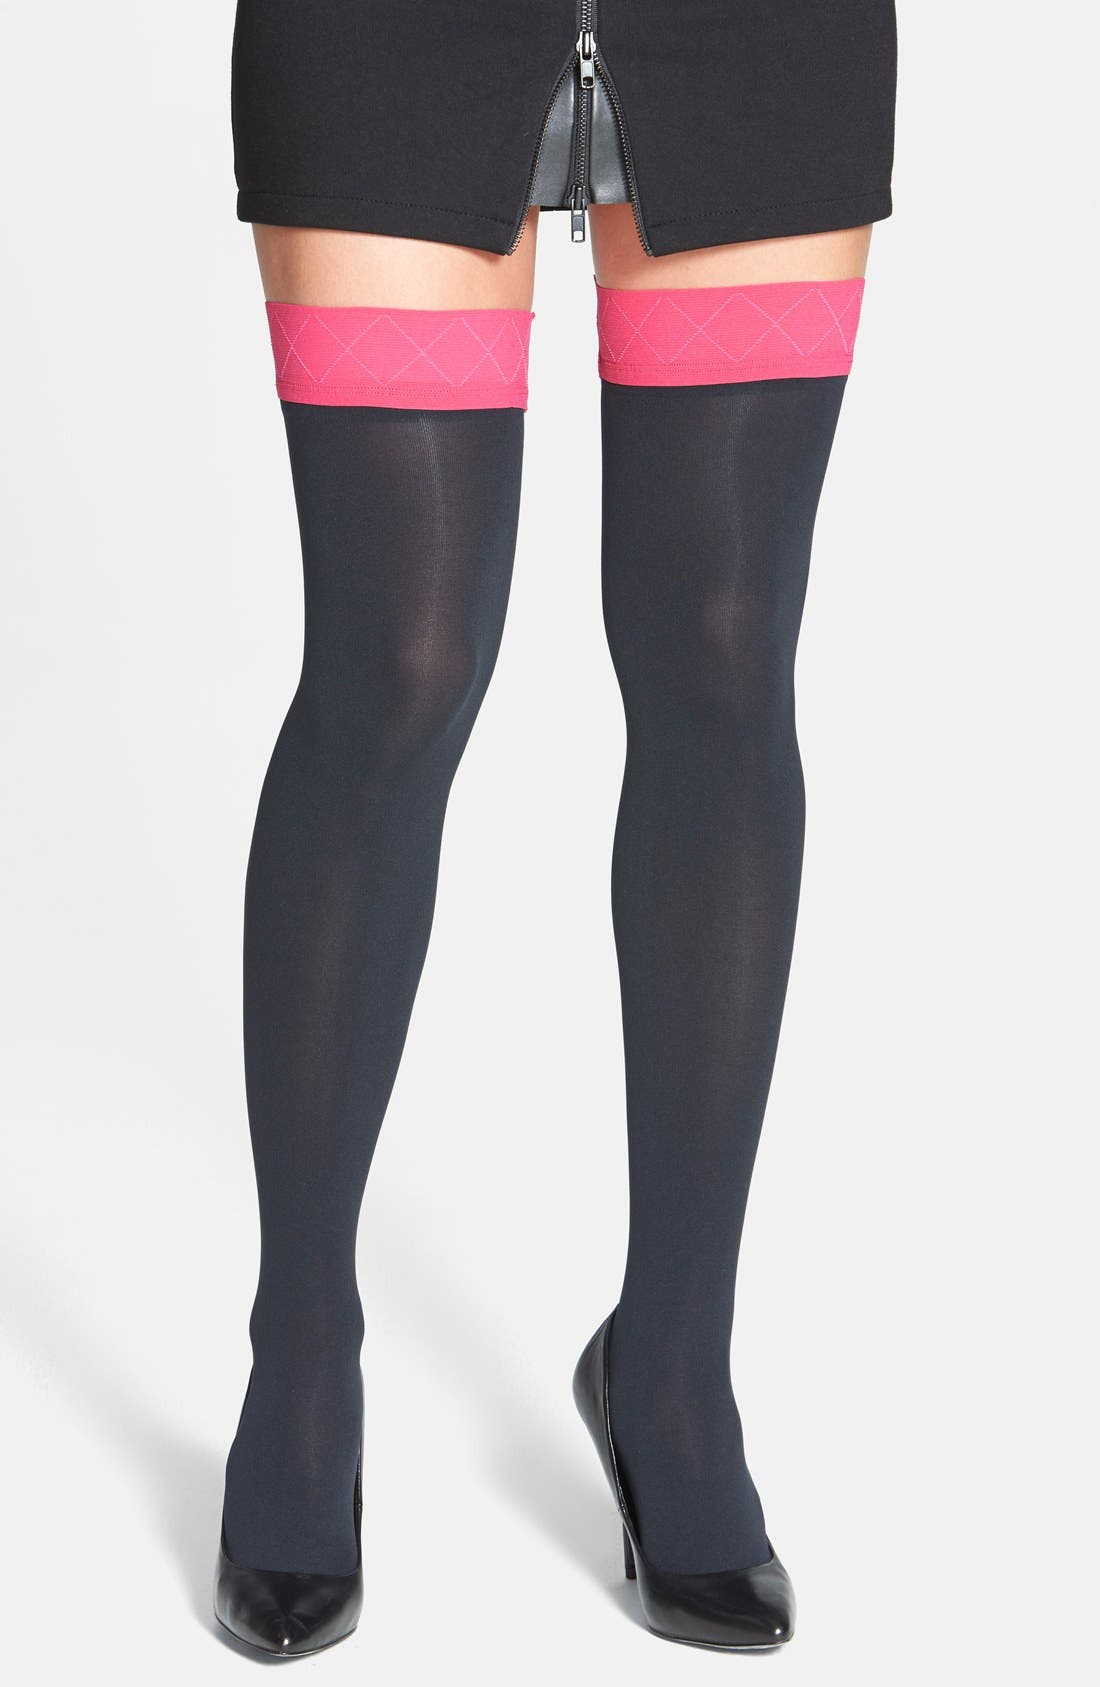 Alternate Image 1 Selected - Pretty Polly Opaque Top Over The Knee Socks